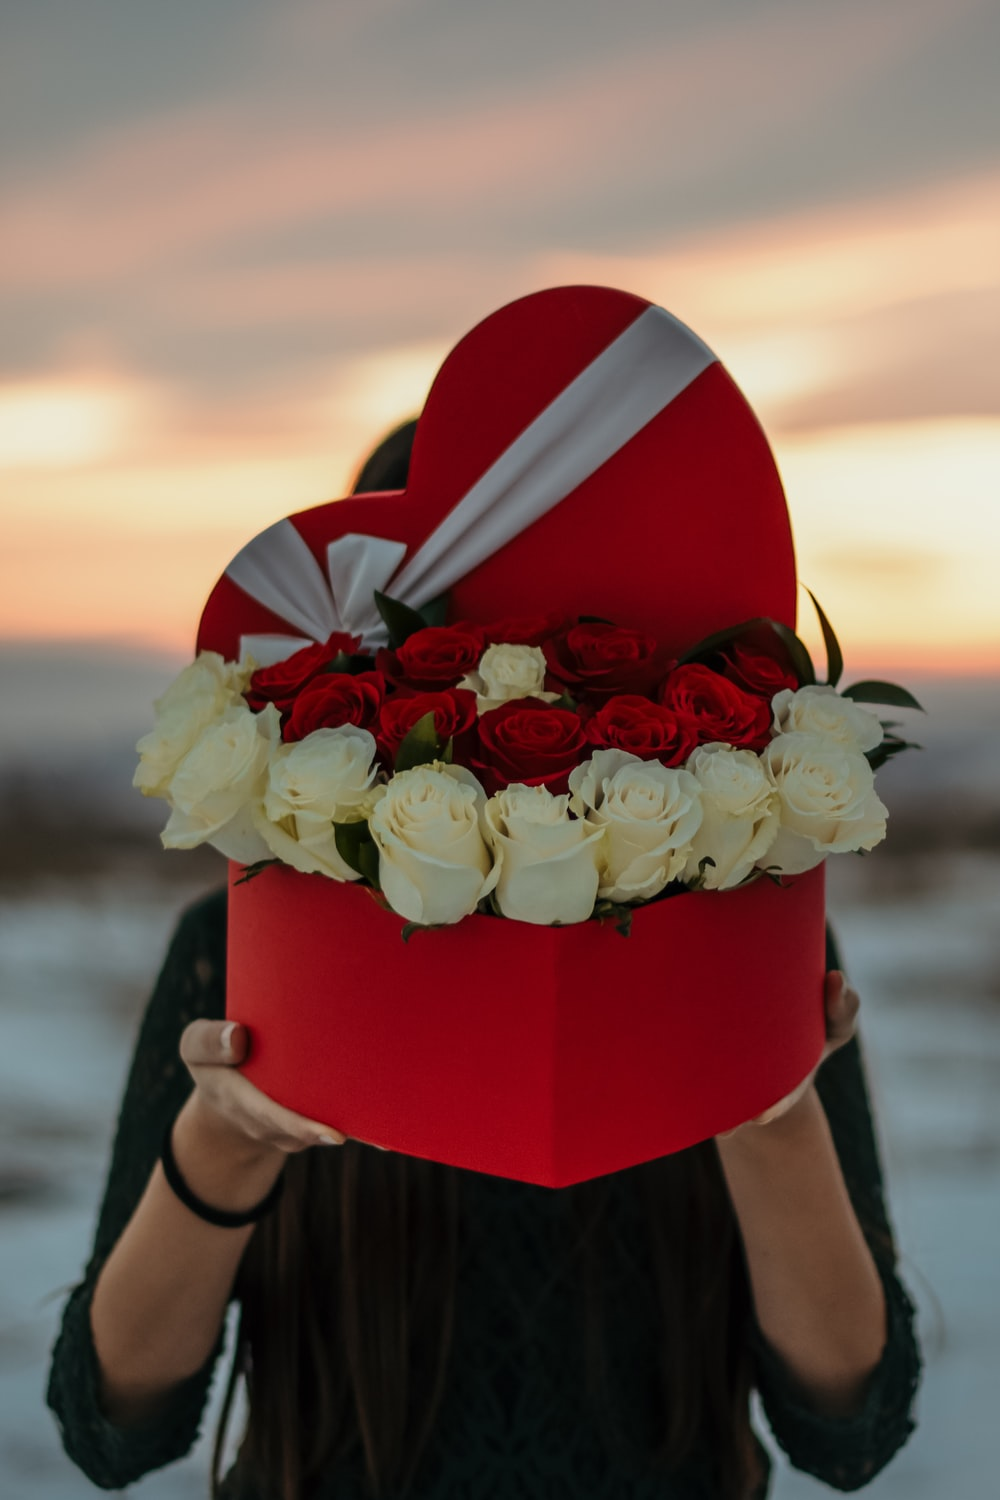 person holding box of roses